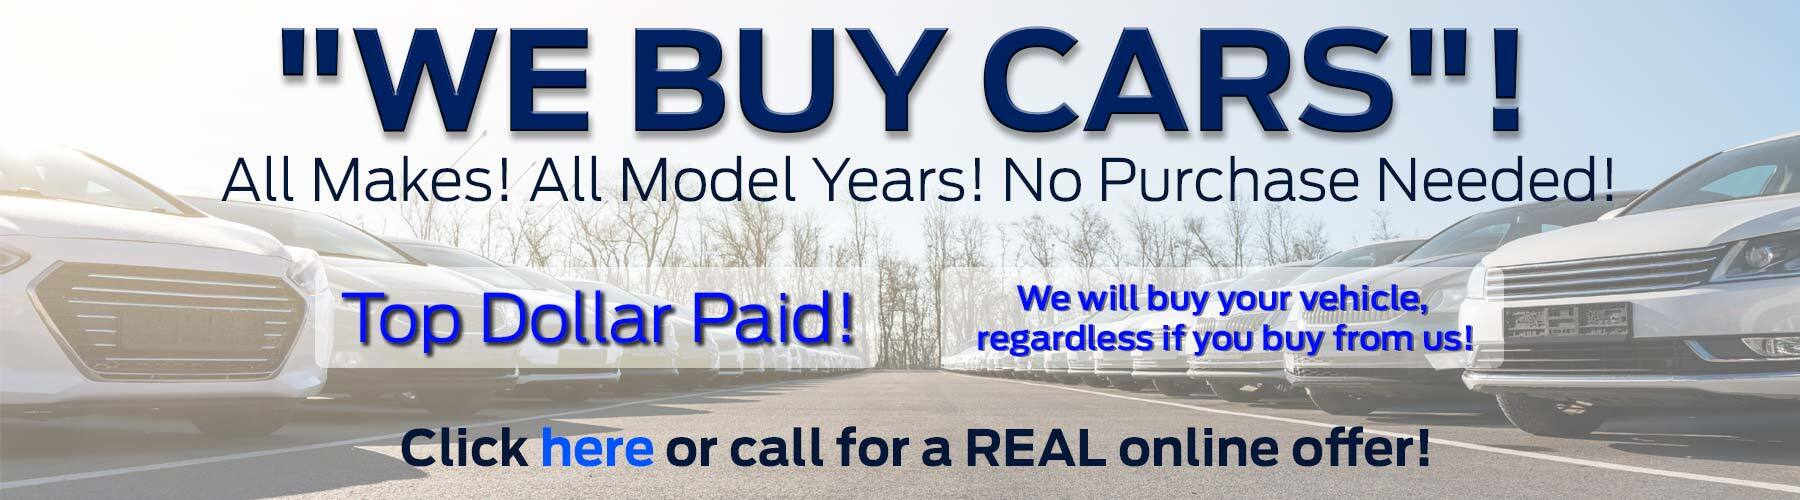 We Buy Cars Offer